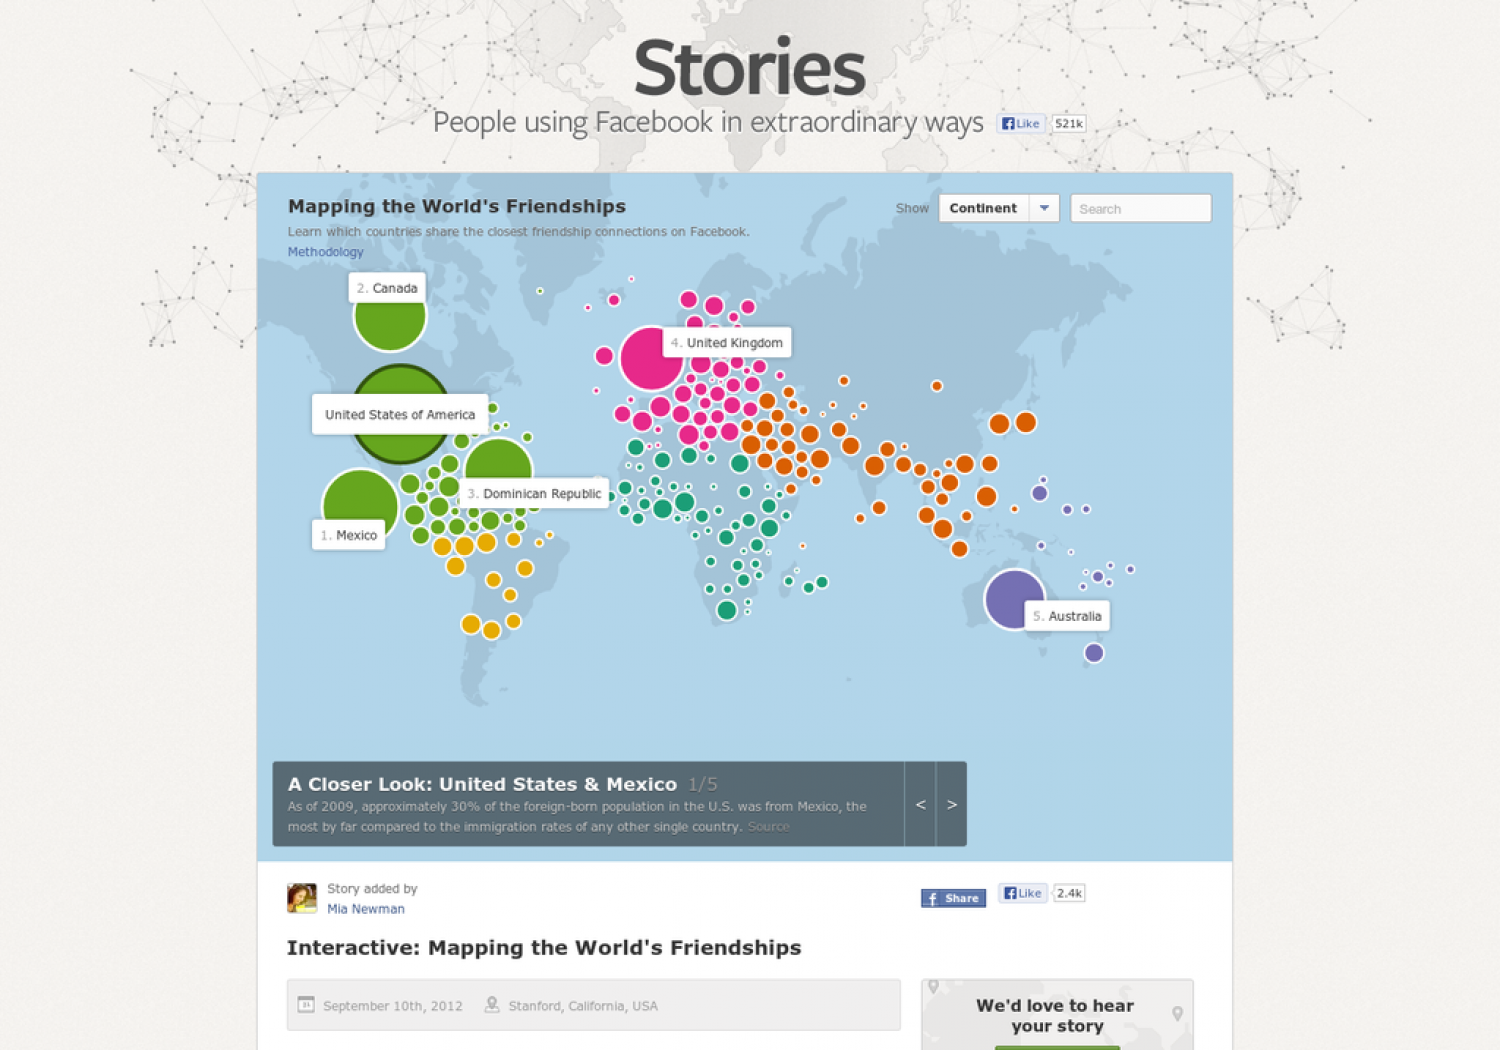 Mapping the World's Friendships Infographic